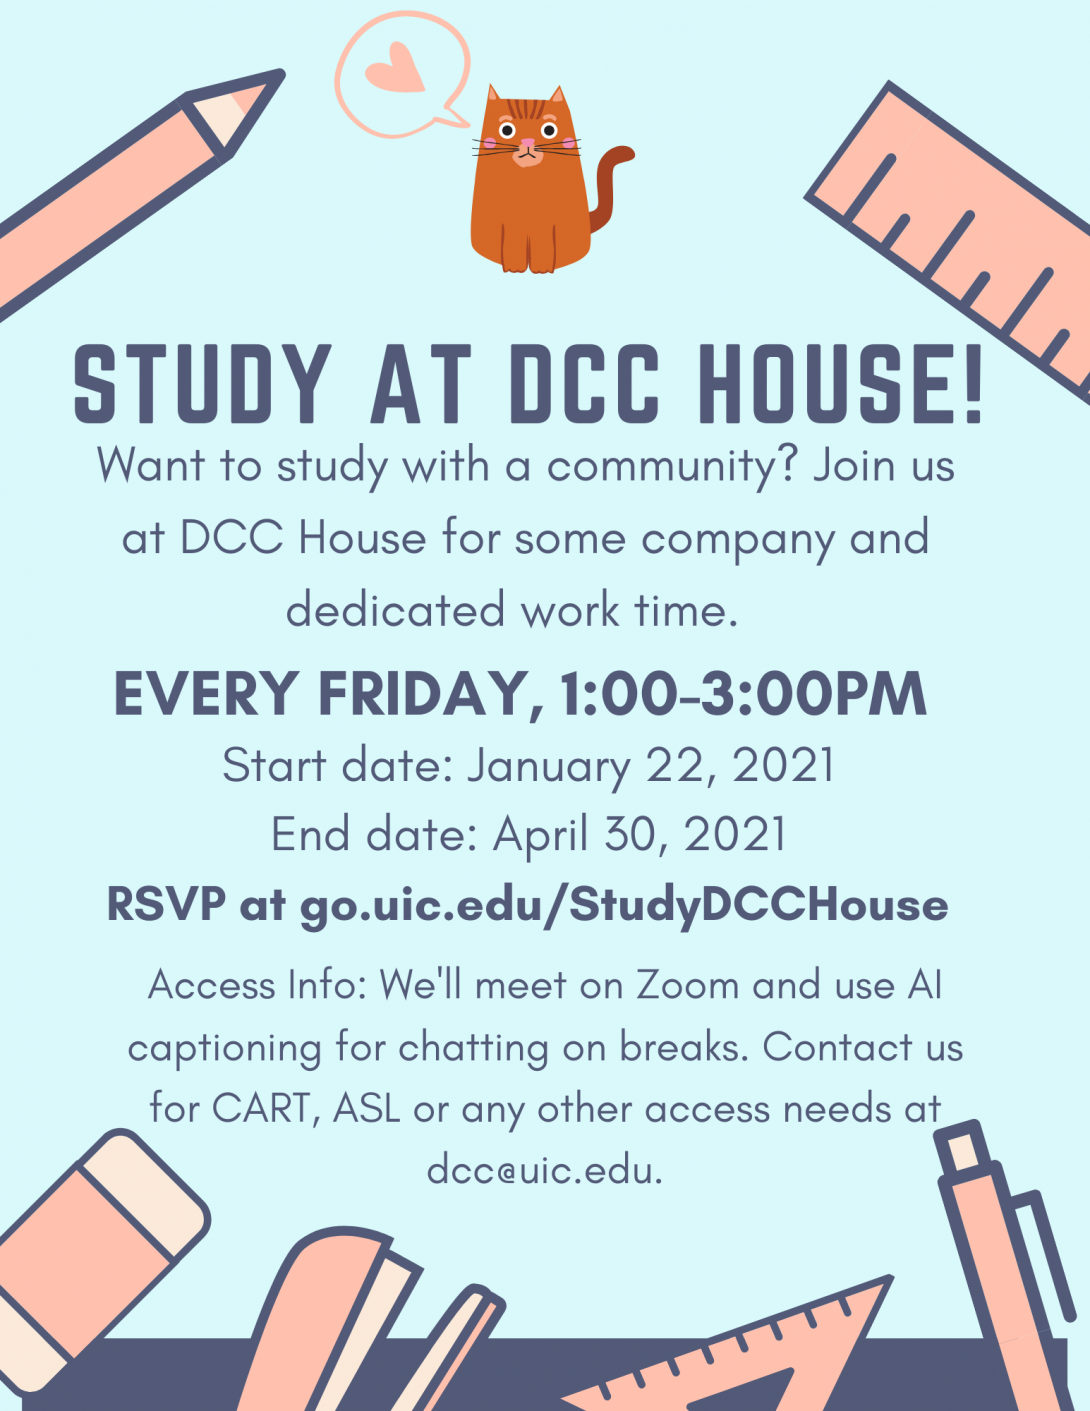 A light blue flyer with large graphic office supplies around the perimeter in peach and navy: a ruler, stapler, eraser, and pen/pencil. The text is bold navy, and at the top is the orange DCC House cat with a peach speech bubble containing a heart.